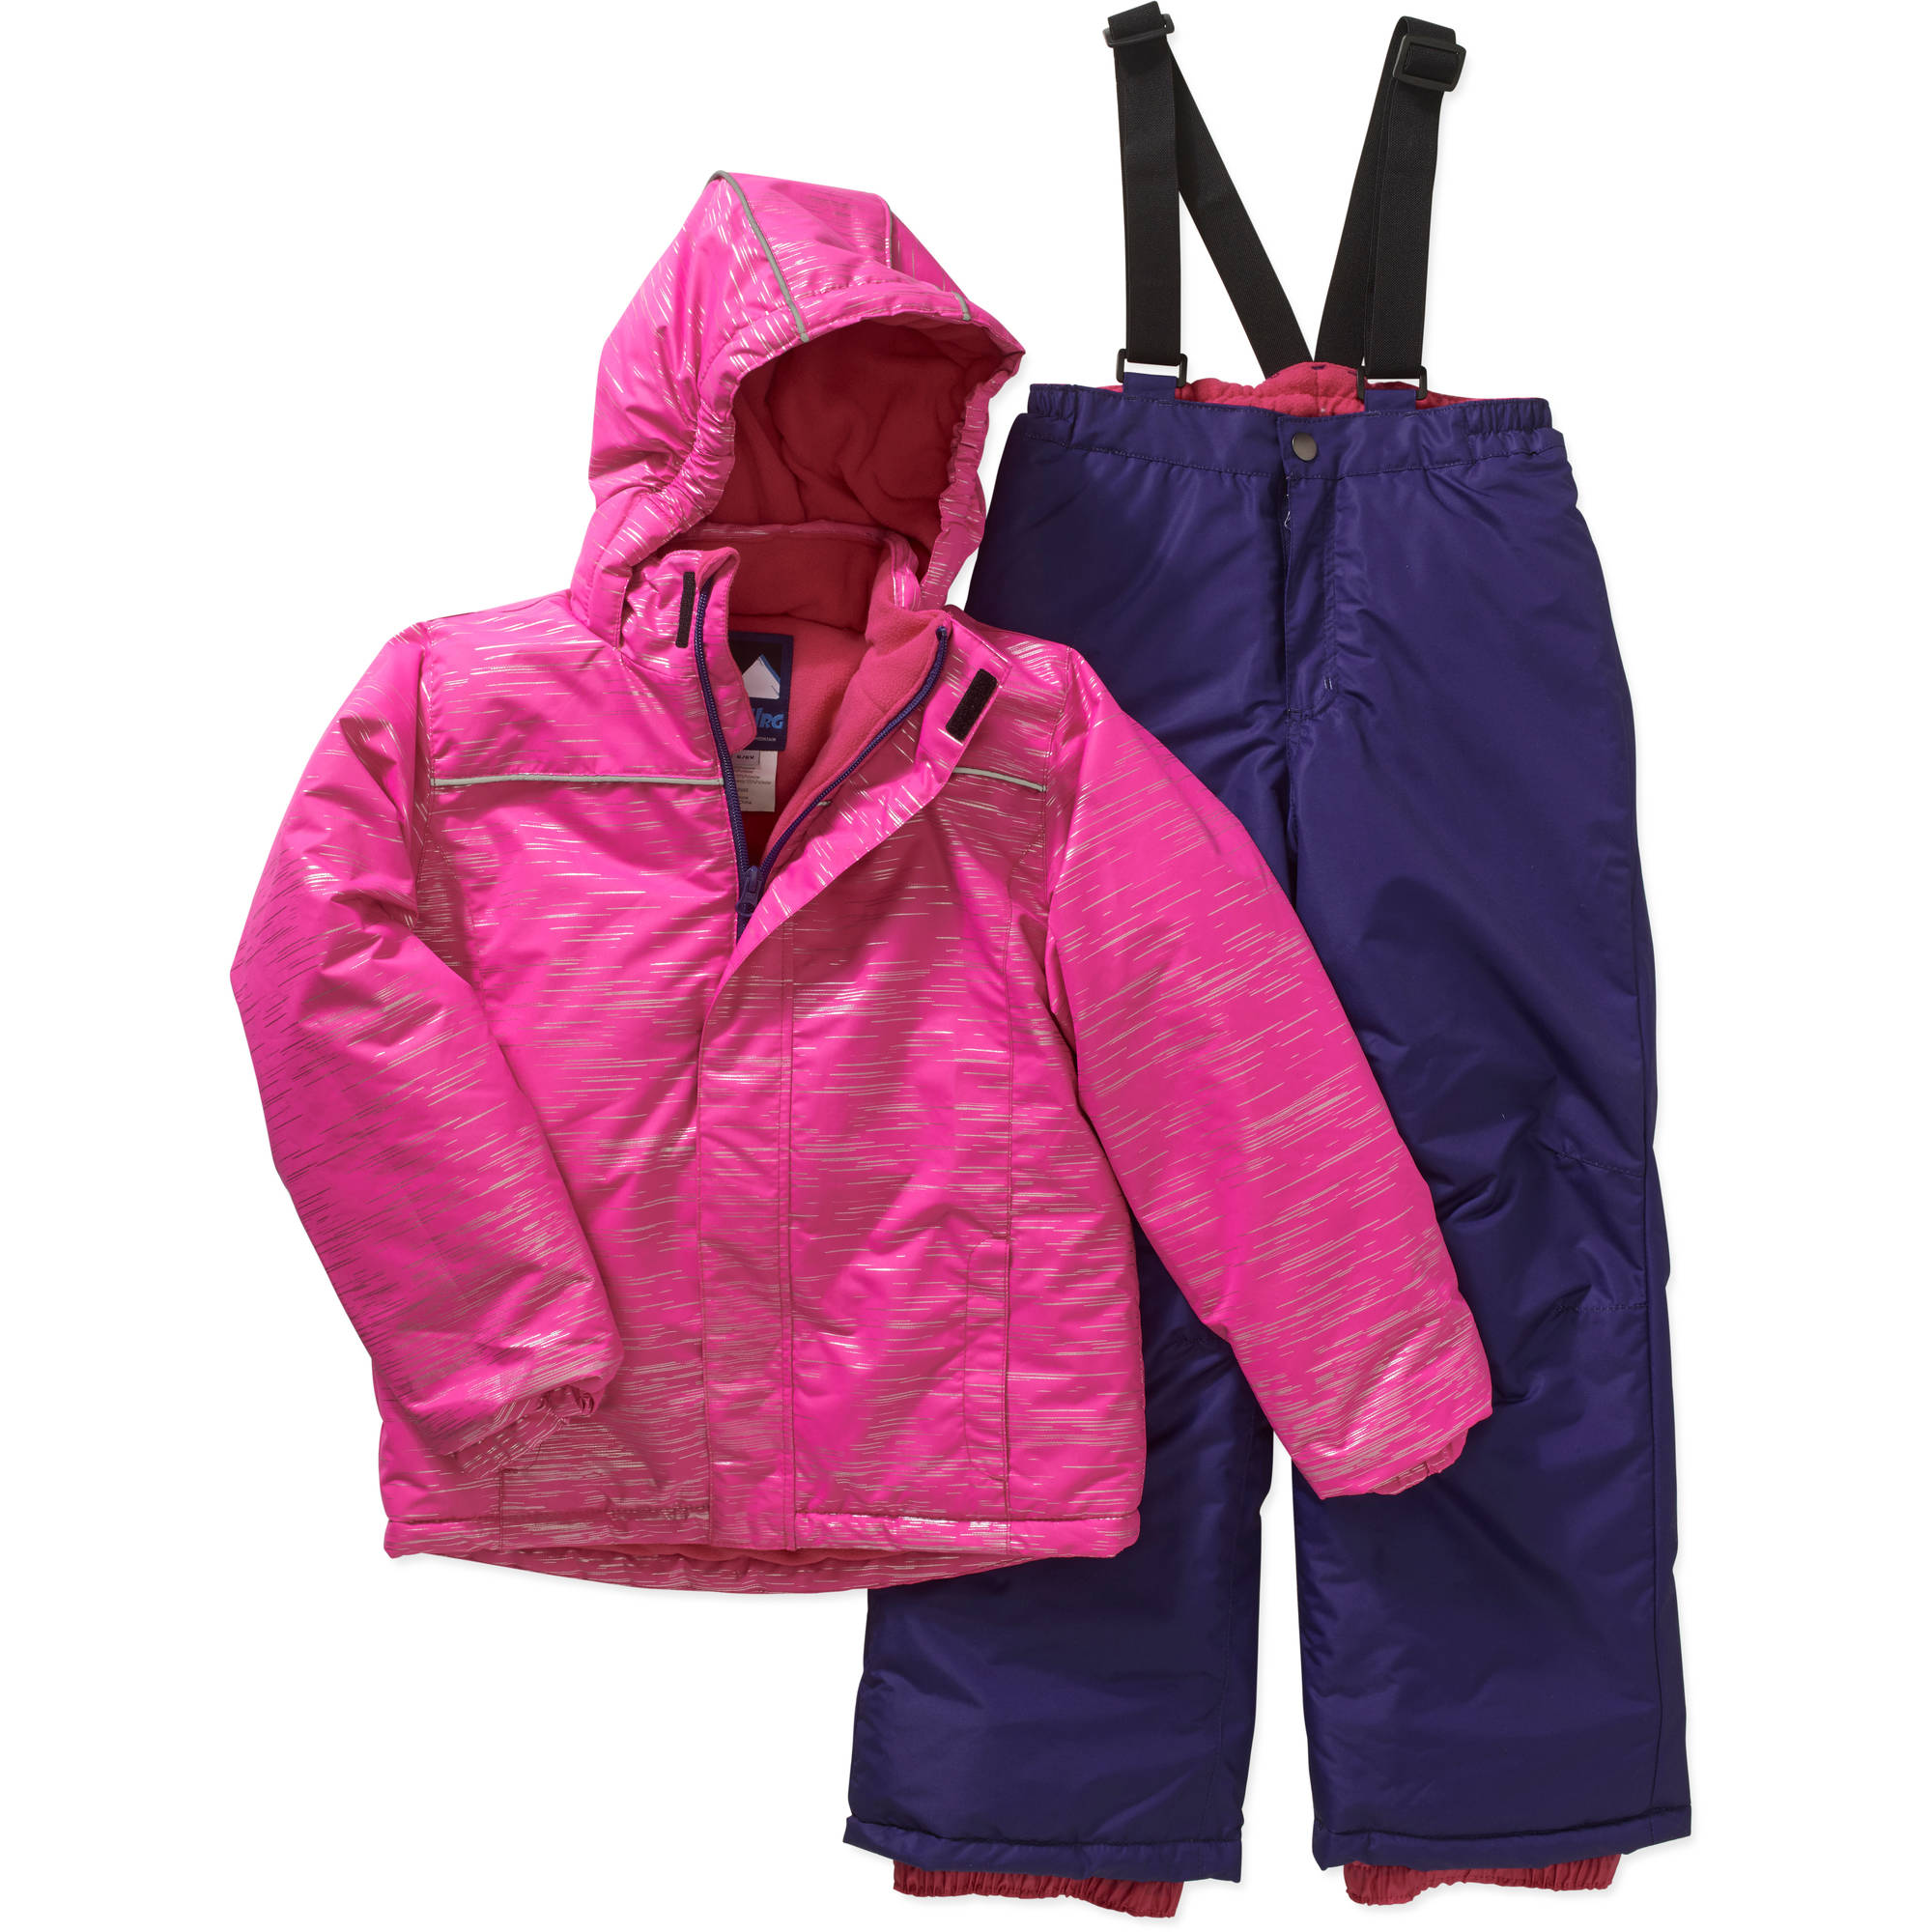 Iceburg Girls' Insulated Glitter Snow Jacket and Bib Suit Set